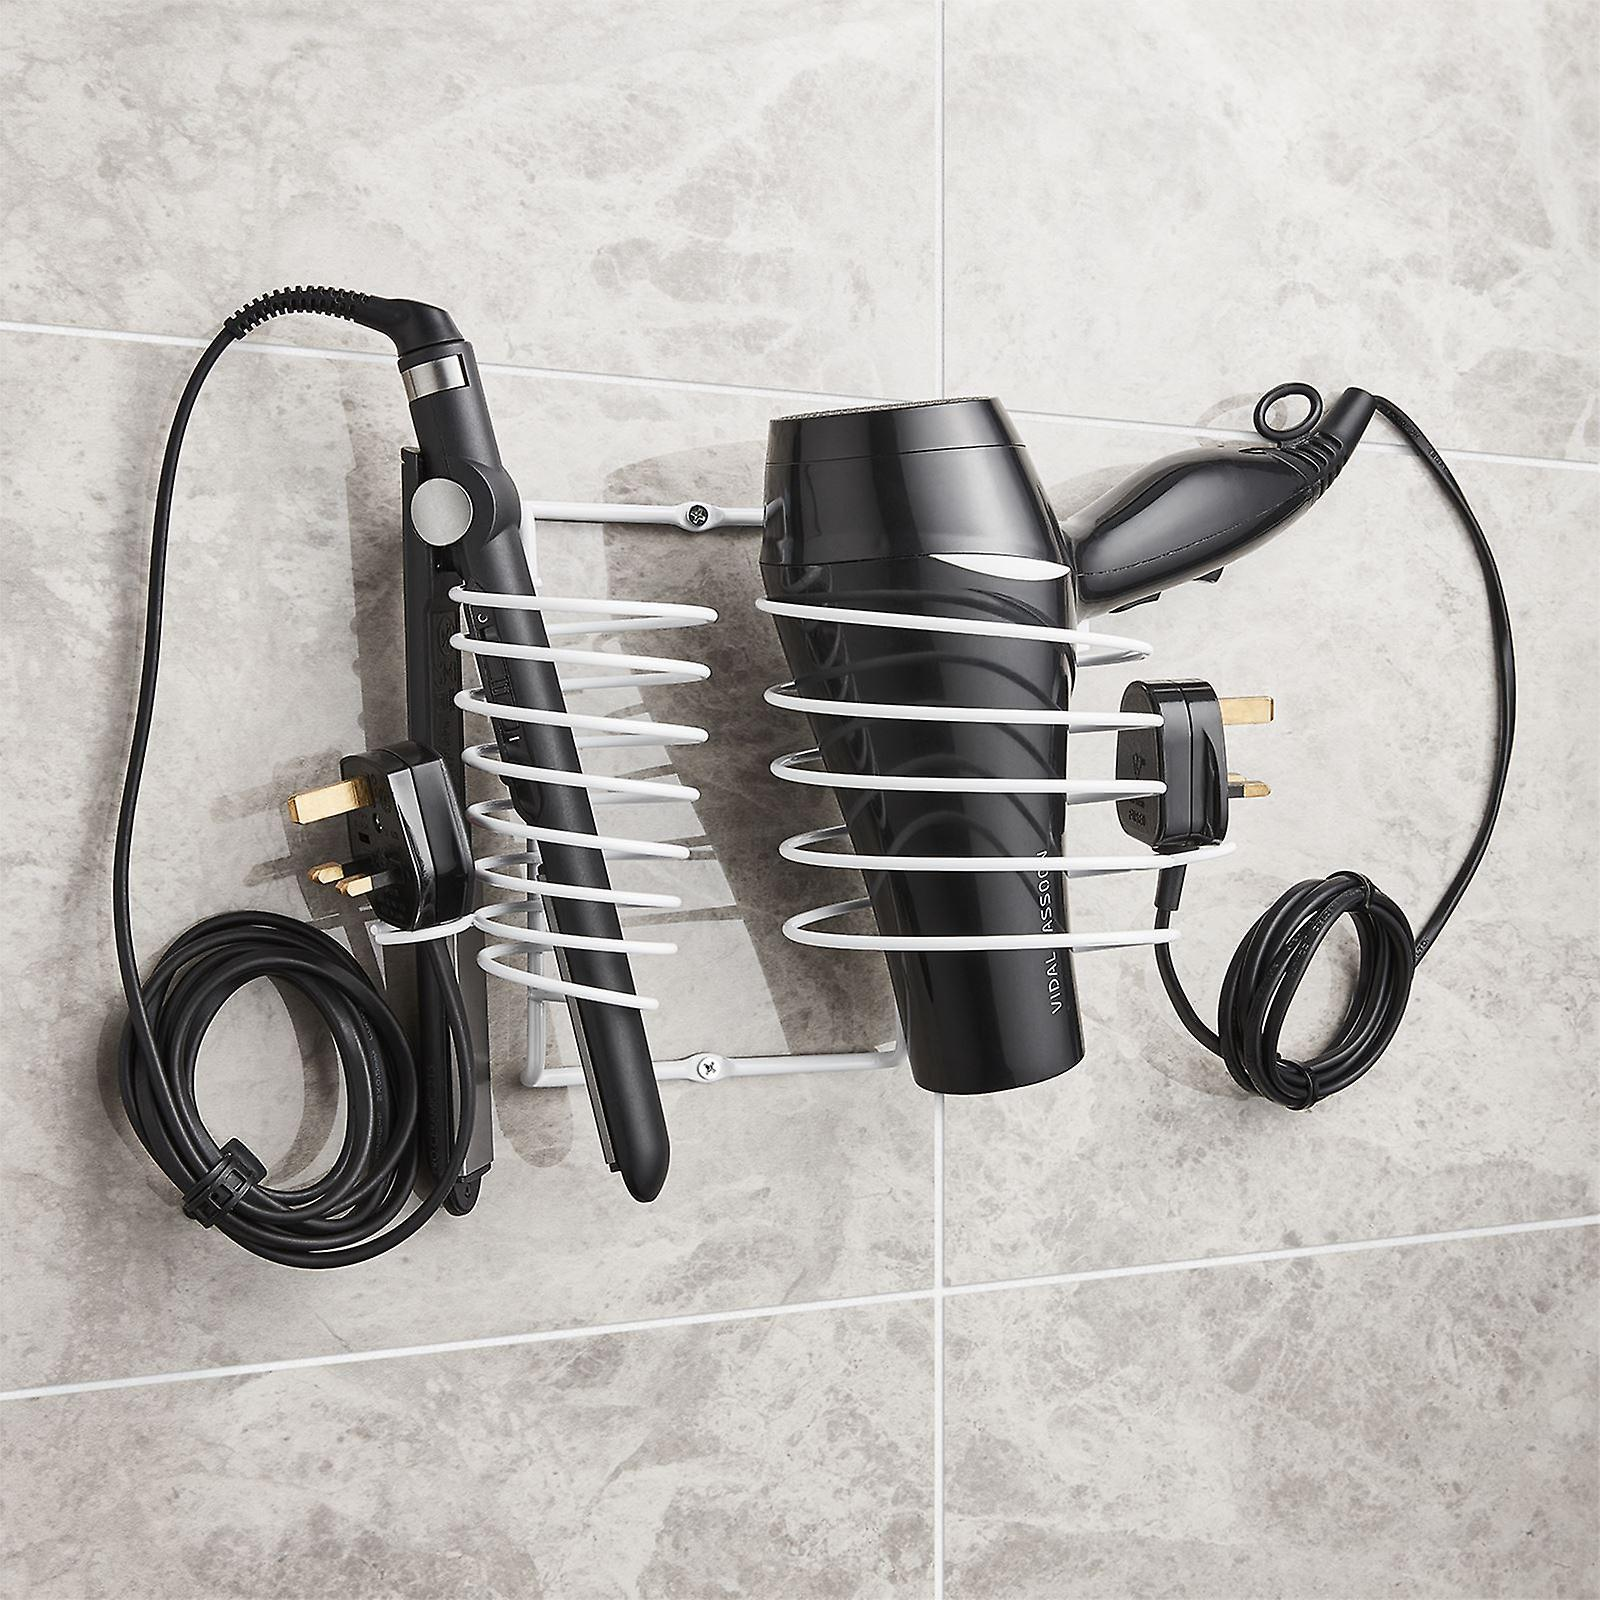 Hairdryer Holder Includes Straightener Holder And Cable Tidy White